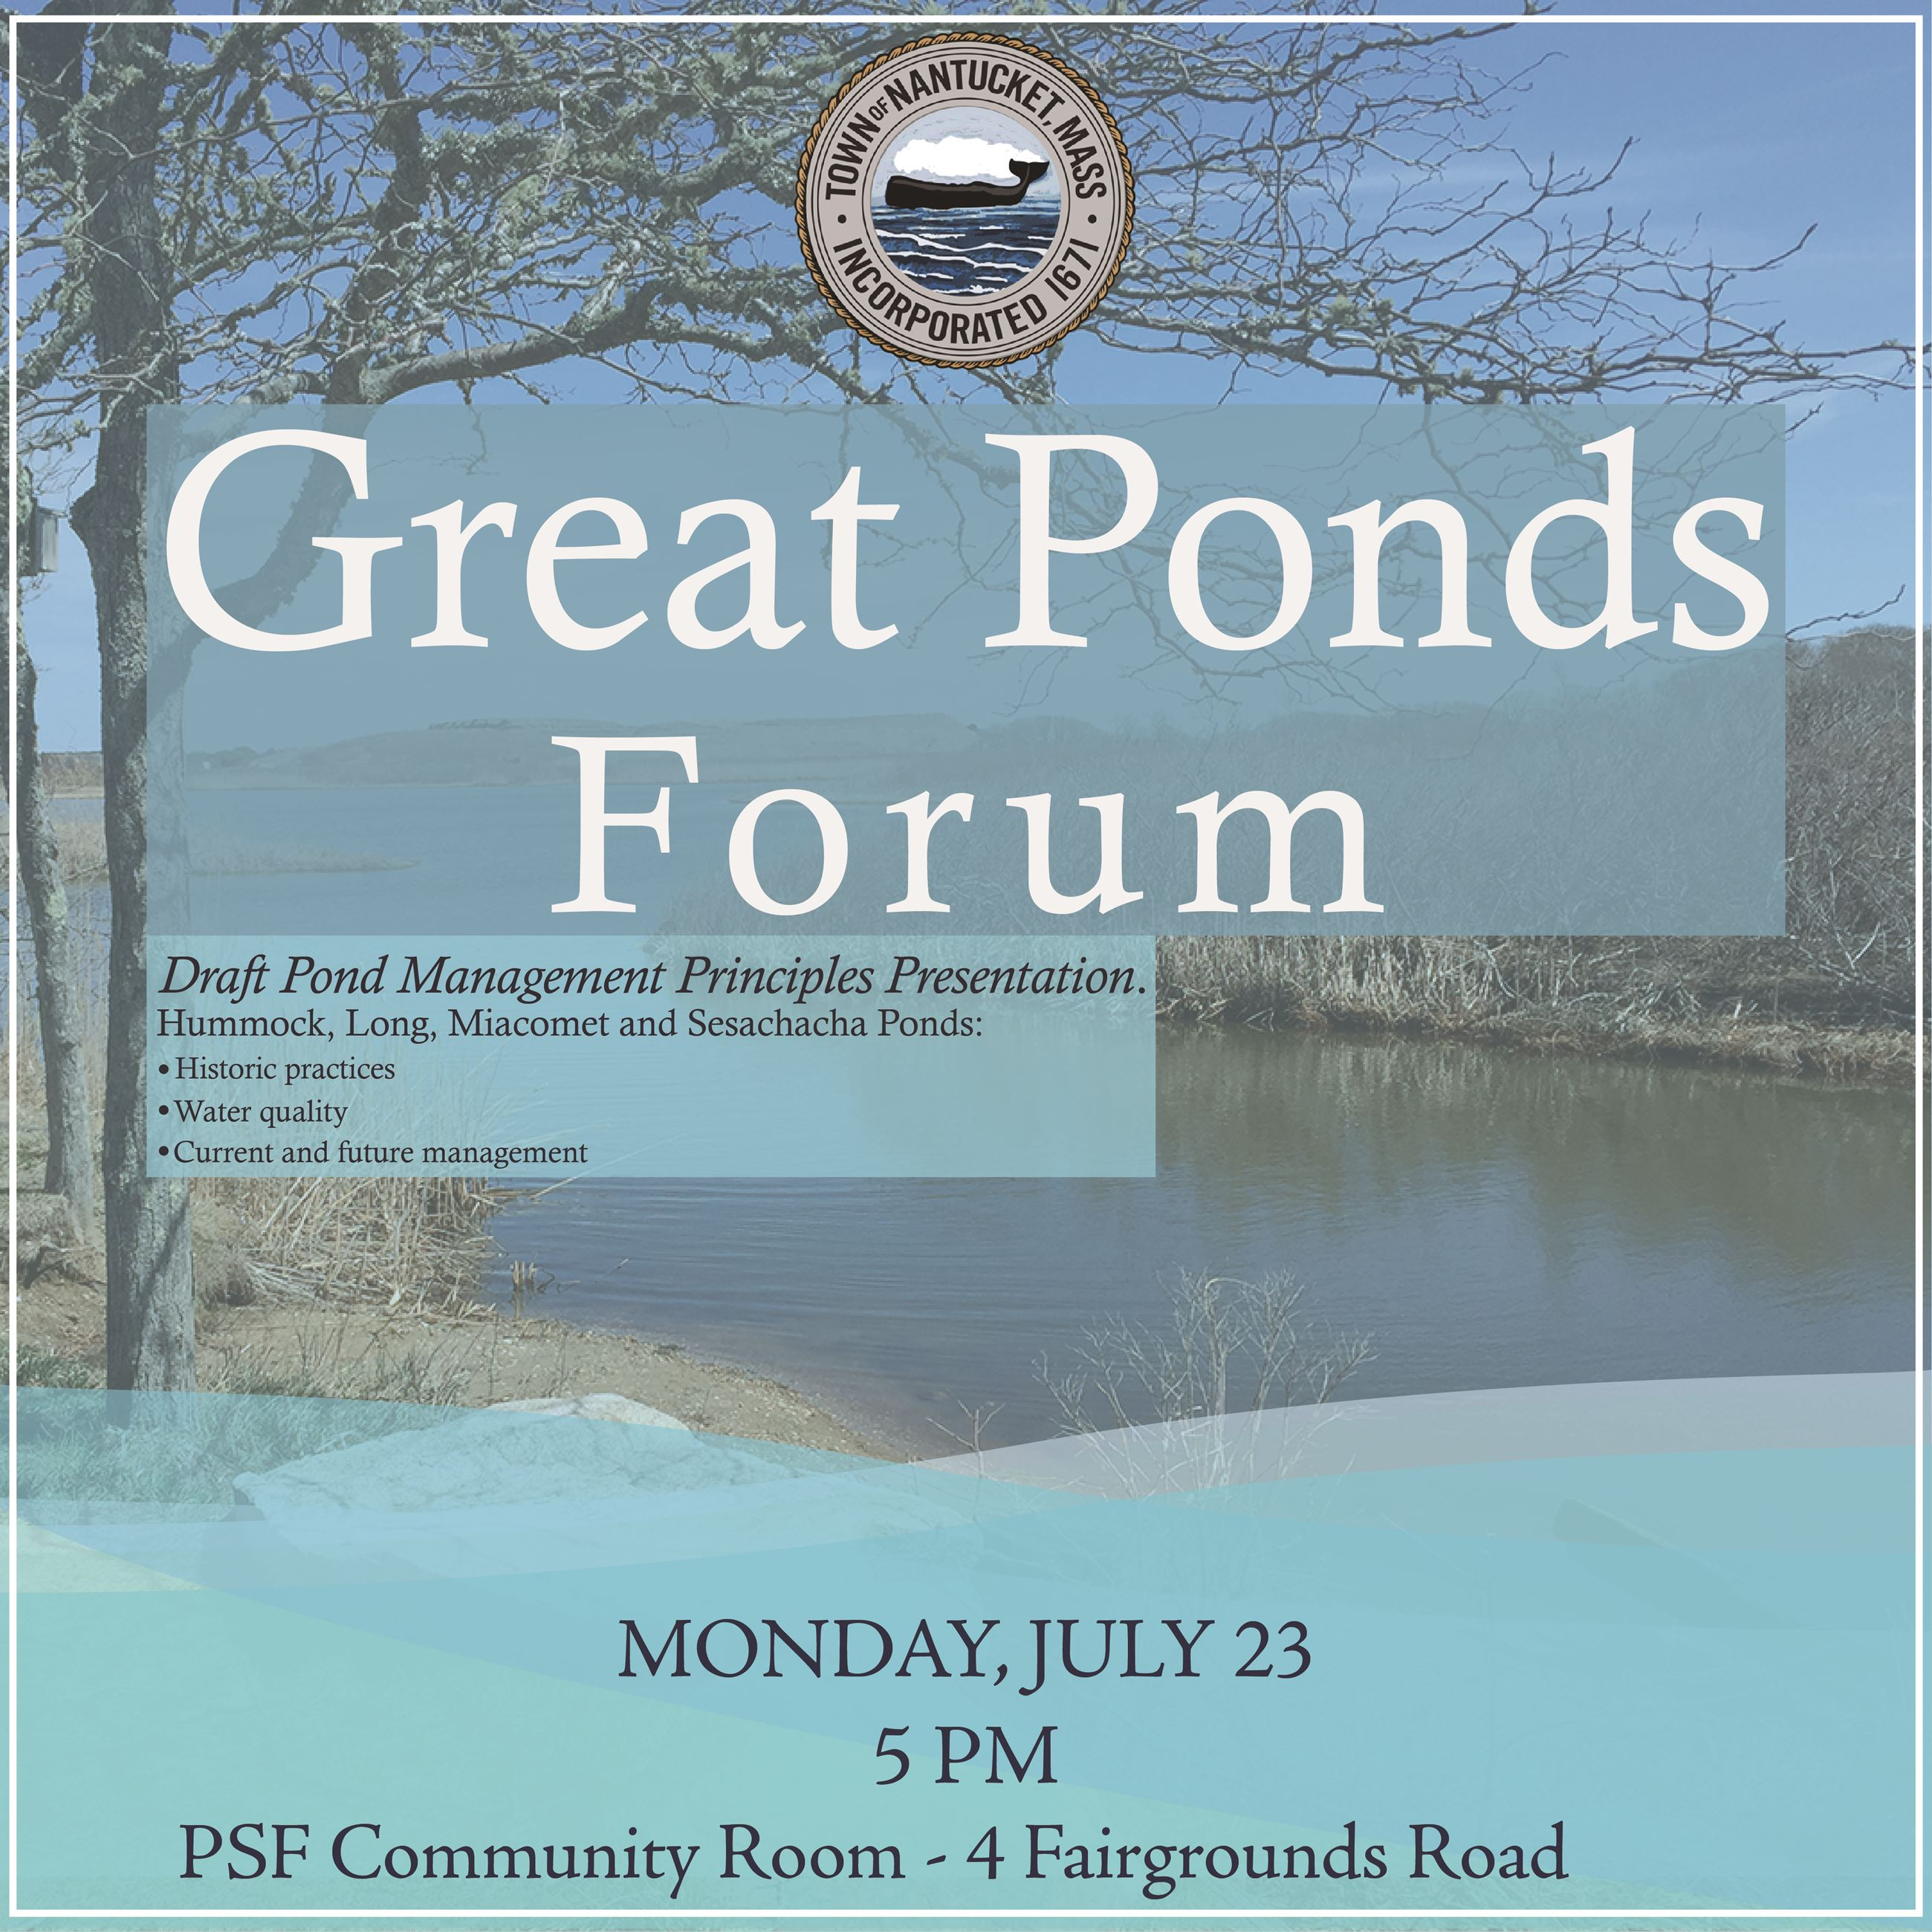 Nantucket Great Ponds Forum on July 23, 2018